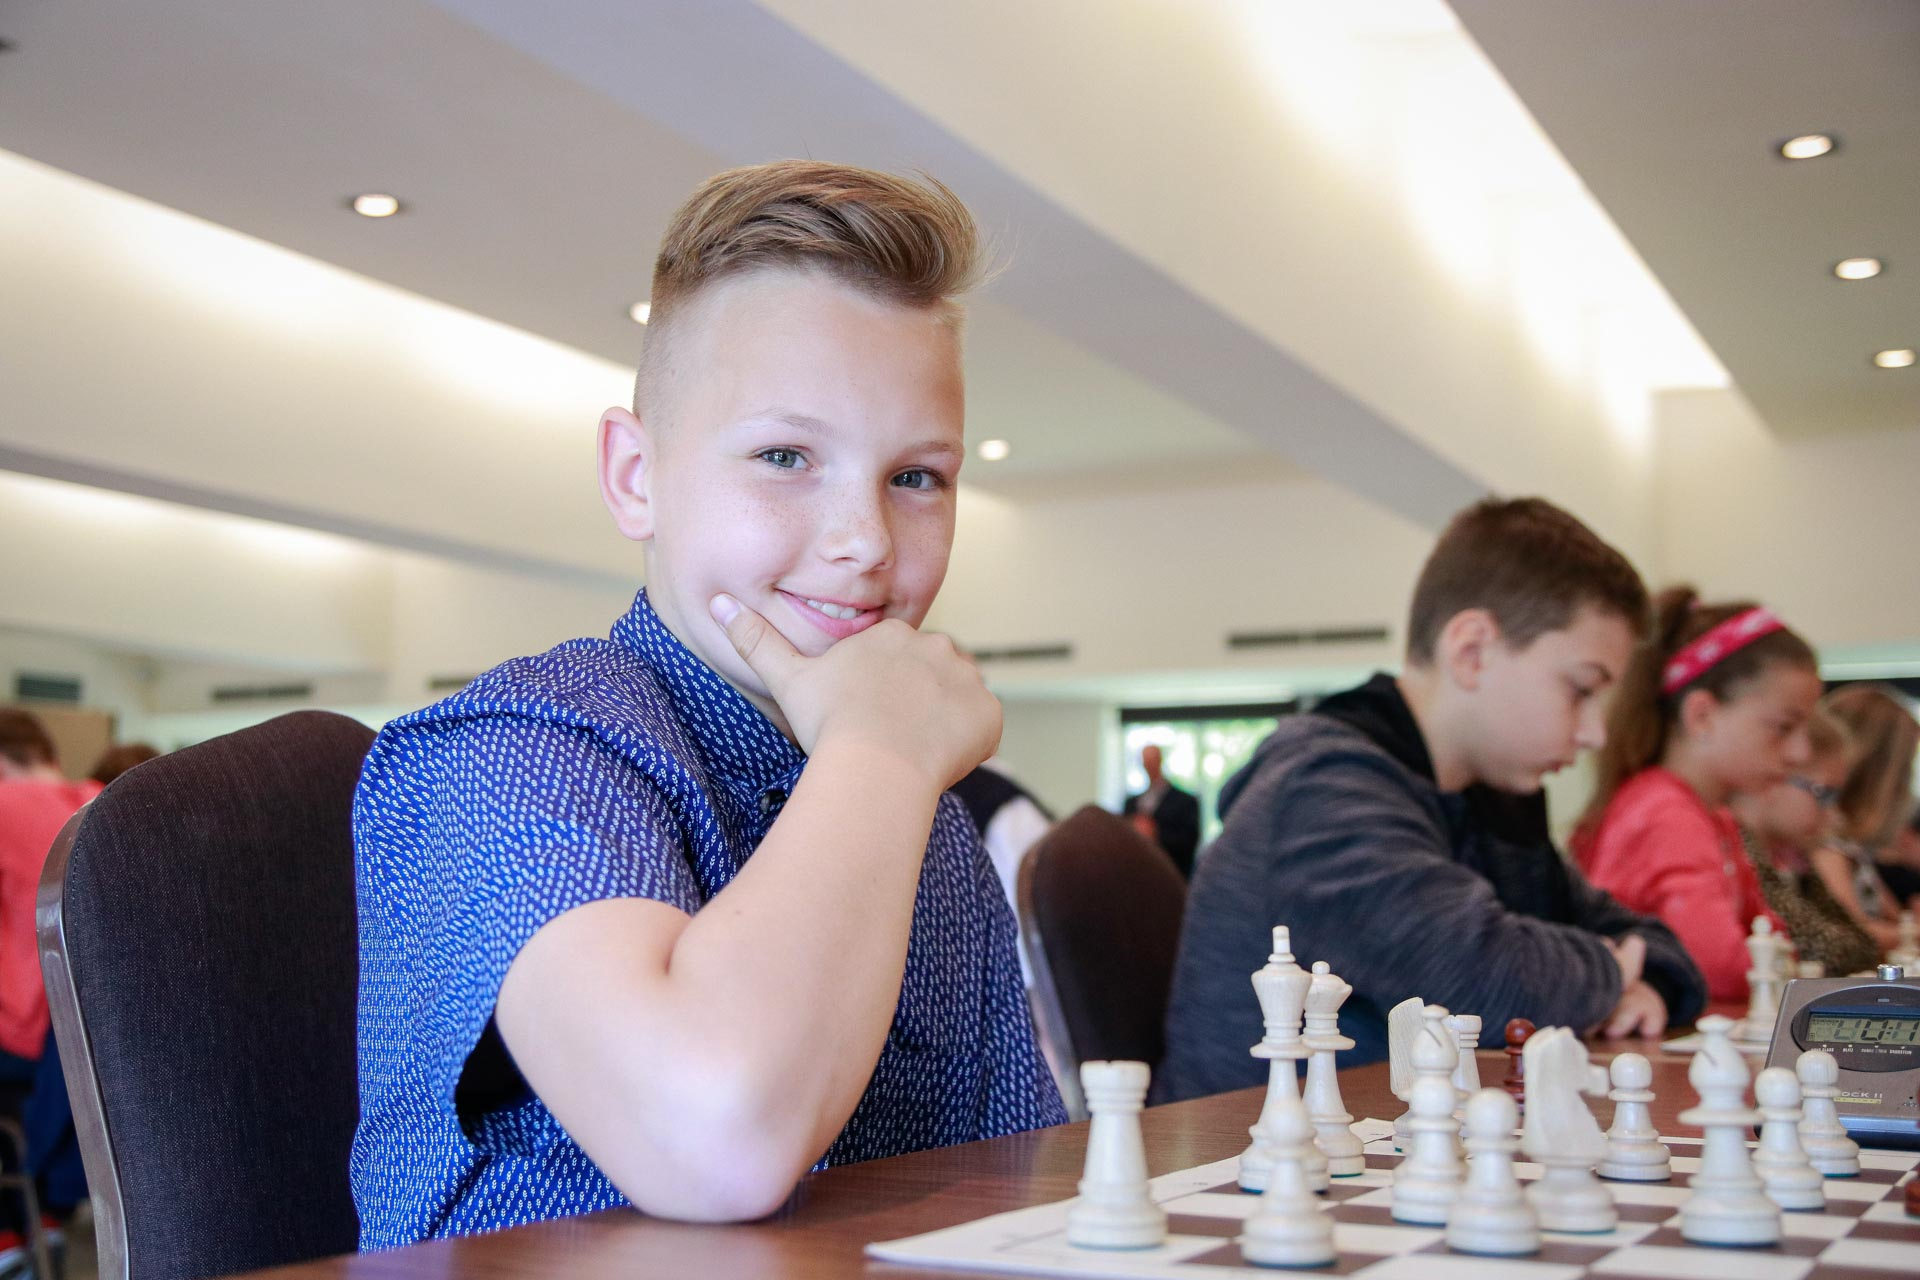 https://kolorline.hu/Chess in the city 2019 -  III. Kolorcity Open